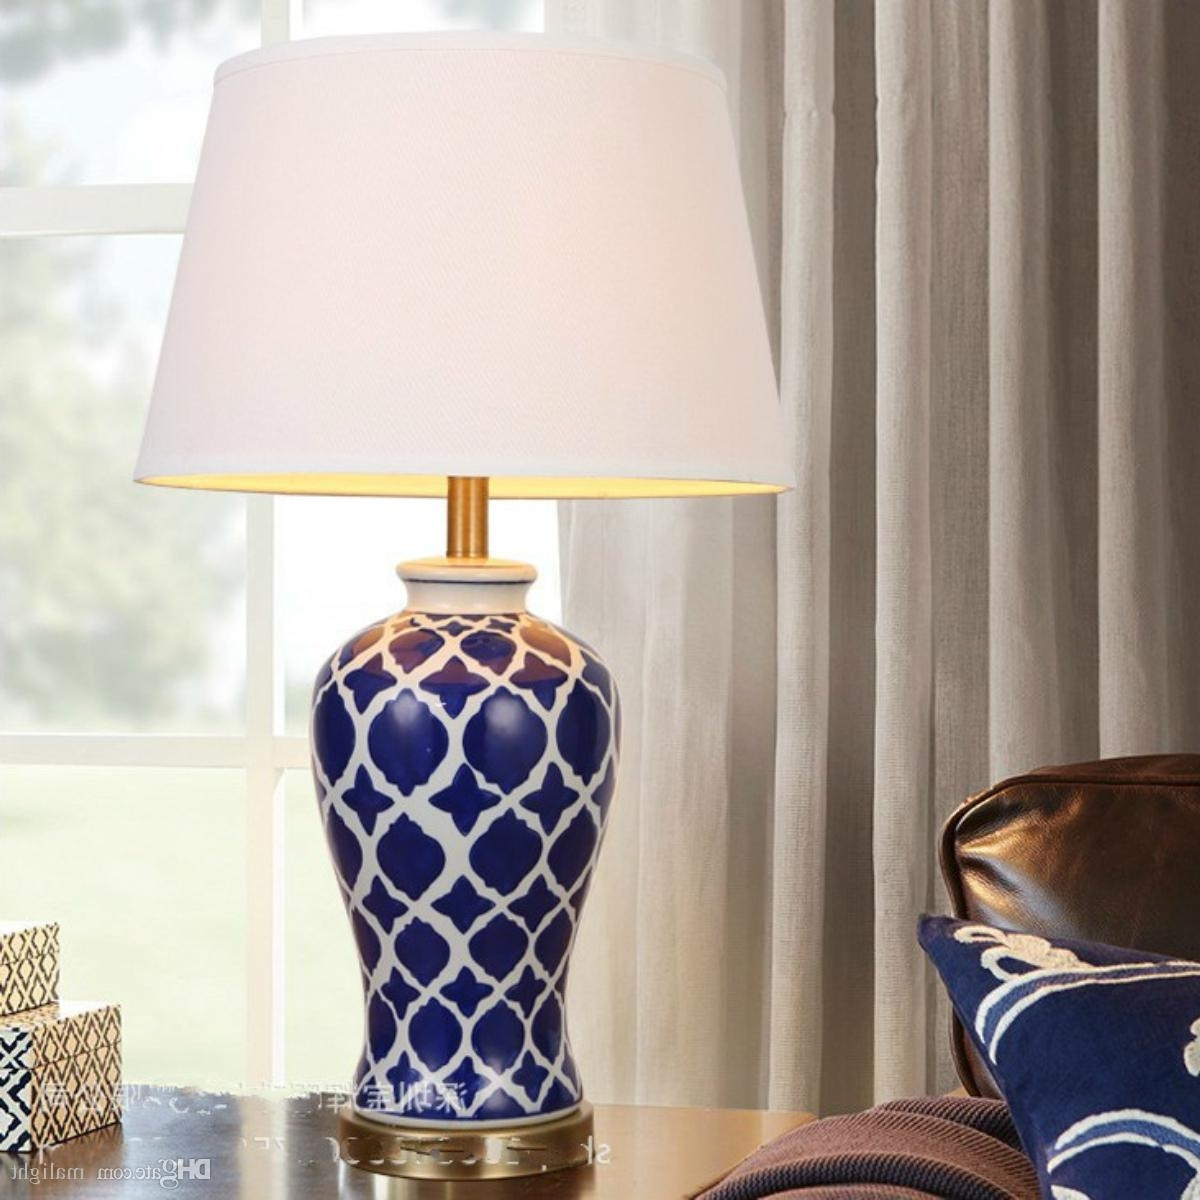 Ceramic Living Room Table Lamps With Regard To Most Current Ceramic Table Lamps For Living Room Modern Yellow Lamp Bedroom Mid (View 7 of 20)